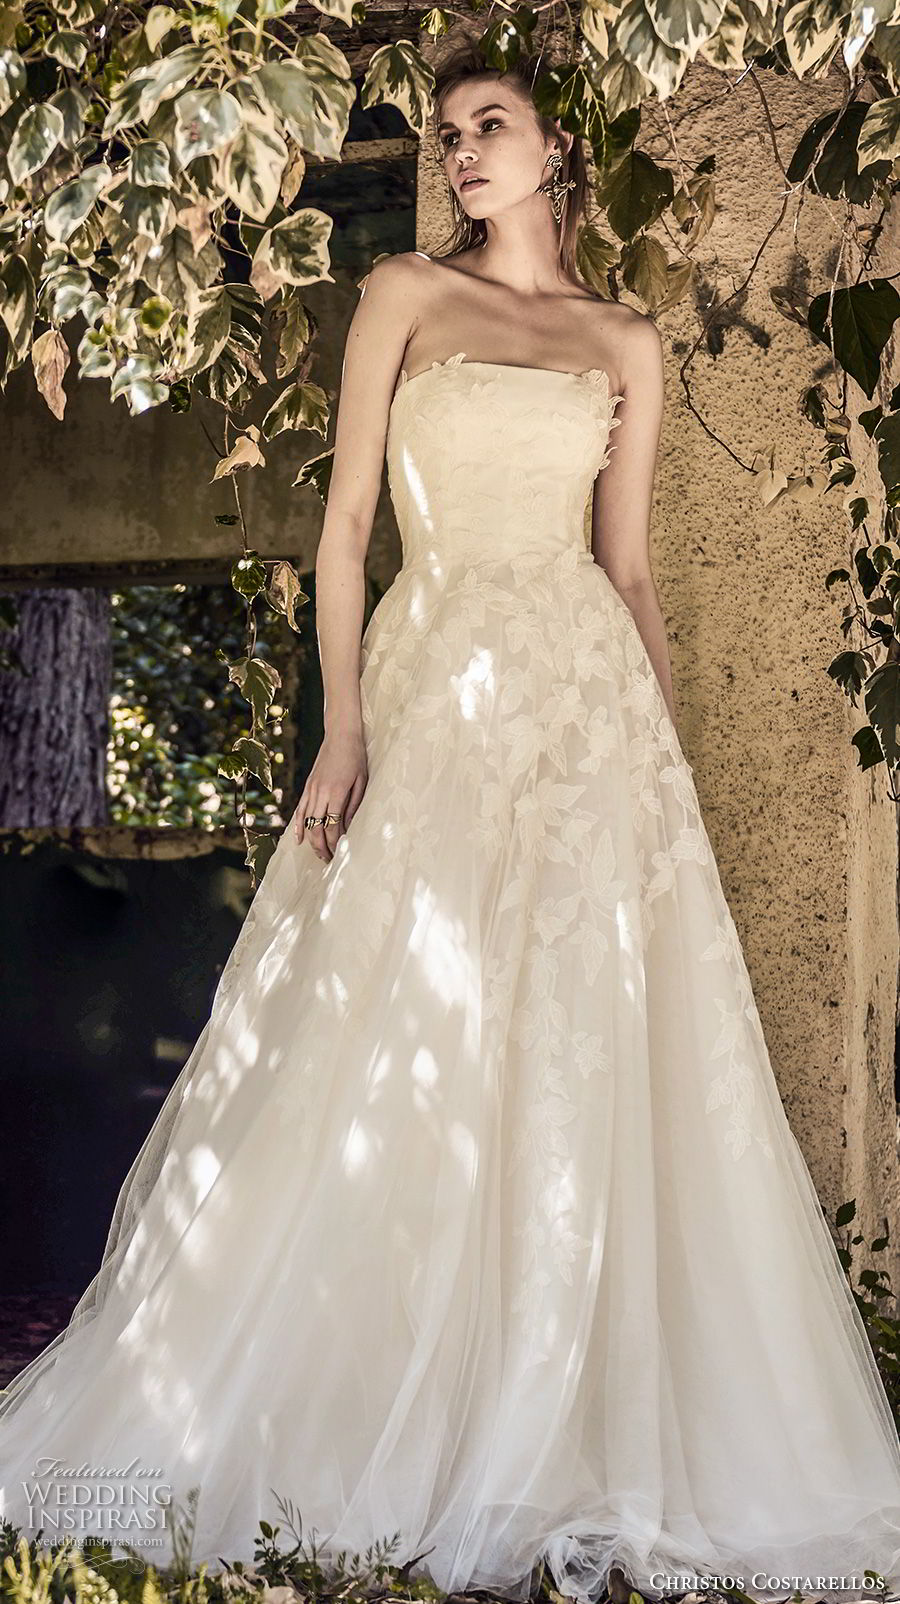 christos costarellos spring 2018 bridal strapless straight across neckline heavily embellished bodice romantic a line wedding dress medium train (48) mv